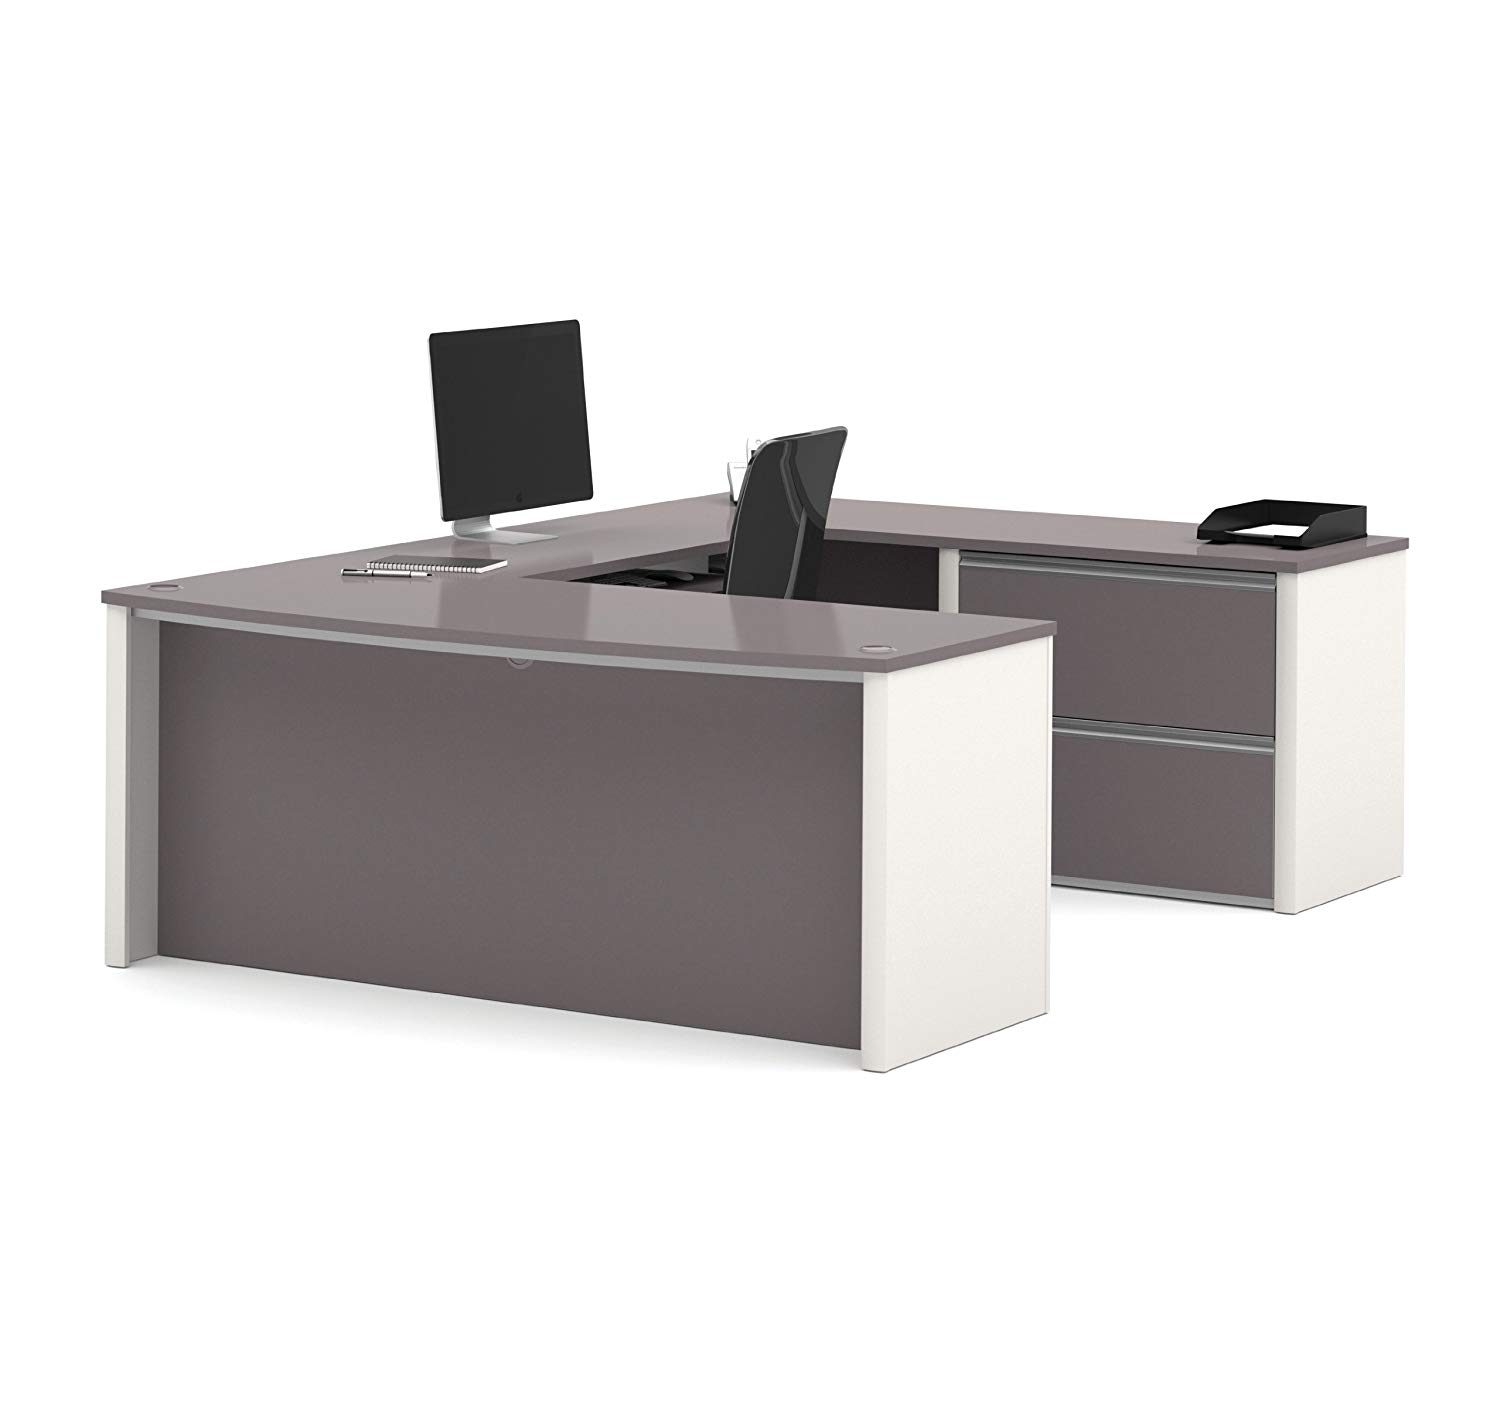 4. Bestar Connexion U-Shaped Workstation with Two Drawers, Slate/Sandstone